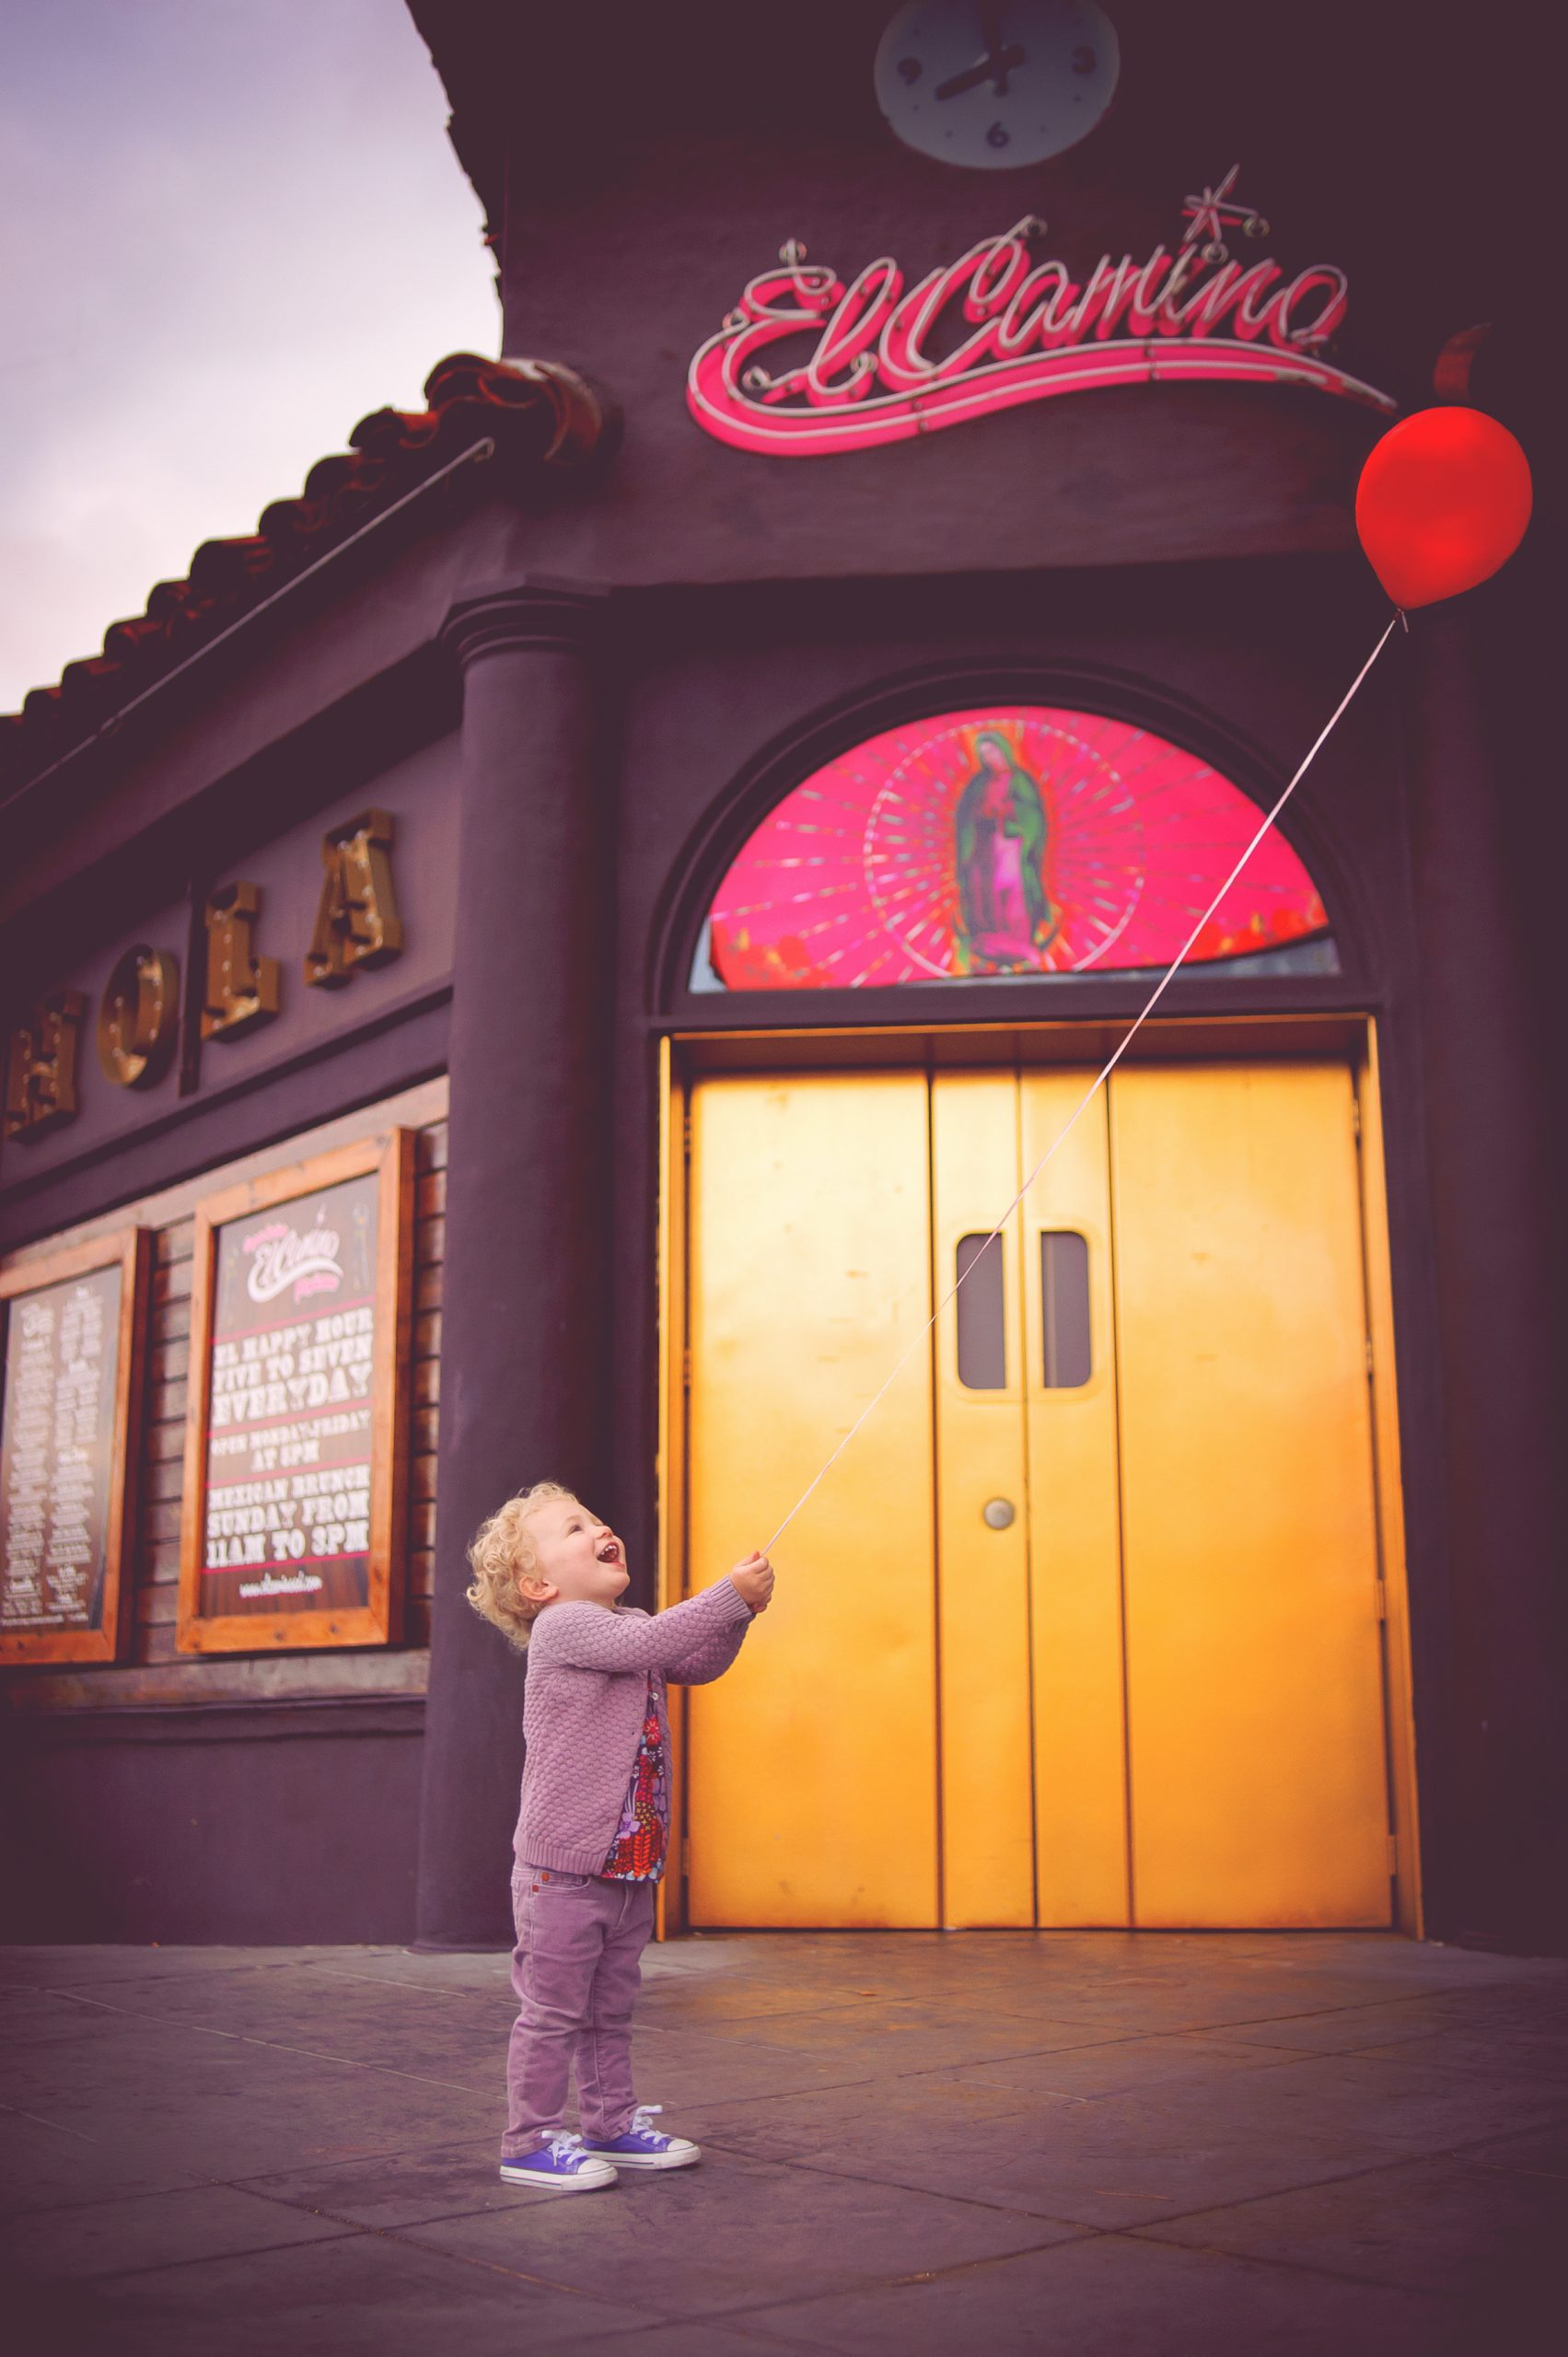 Fun urban family photo shoot in front of El Camino Restaurant in Little Italy, San Diego